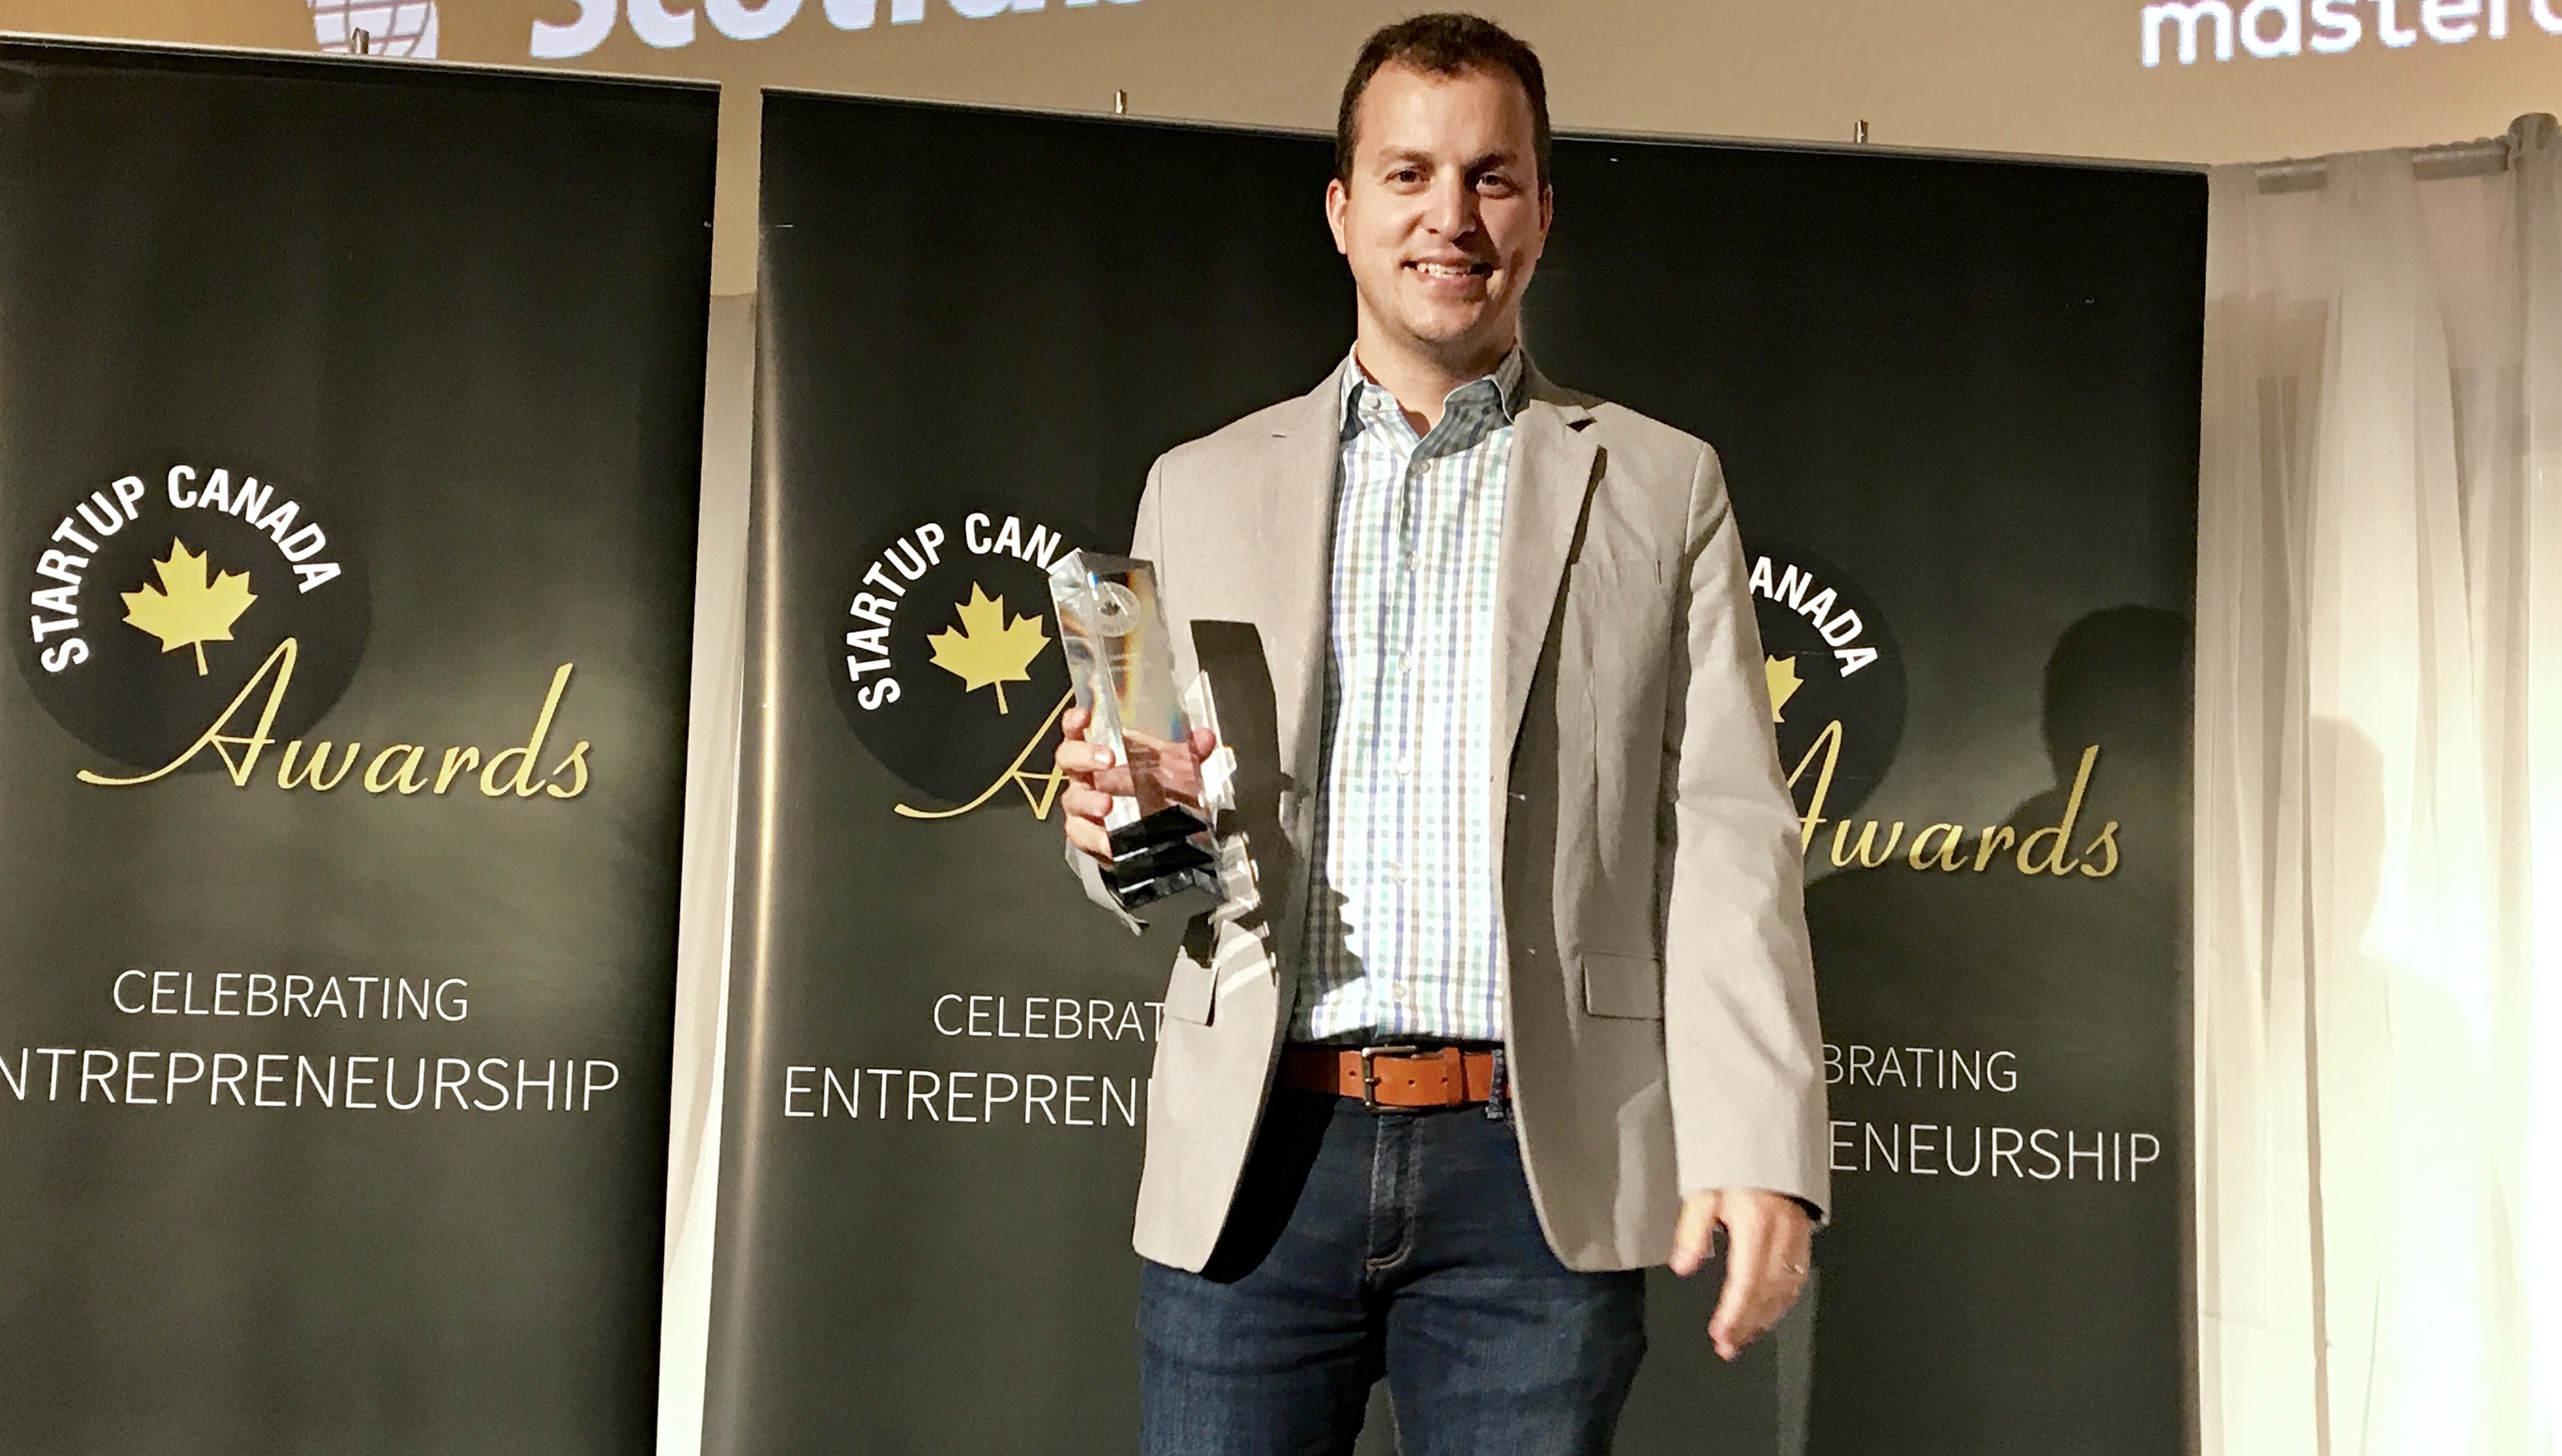 Chris Johnson of Permission Click wins Startup Canada Award